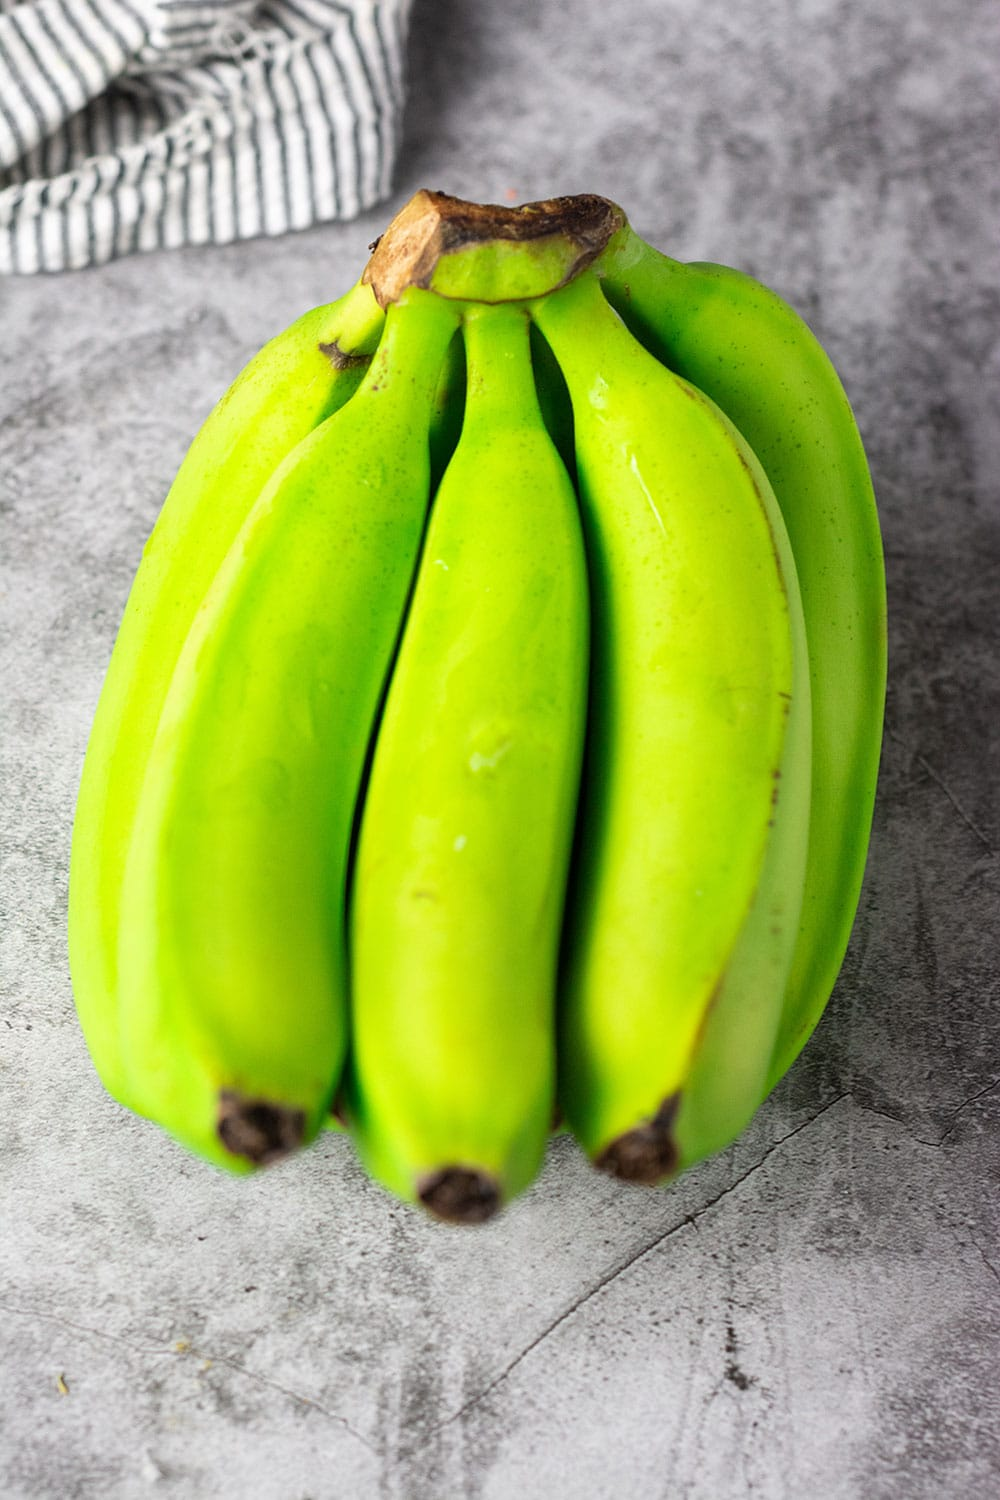 Green banana on a grey marbled background